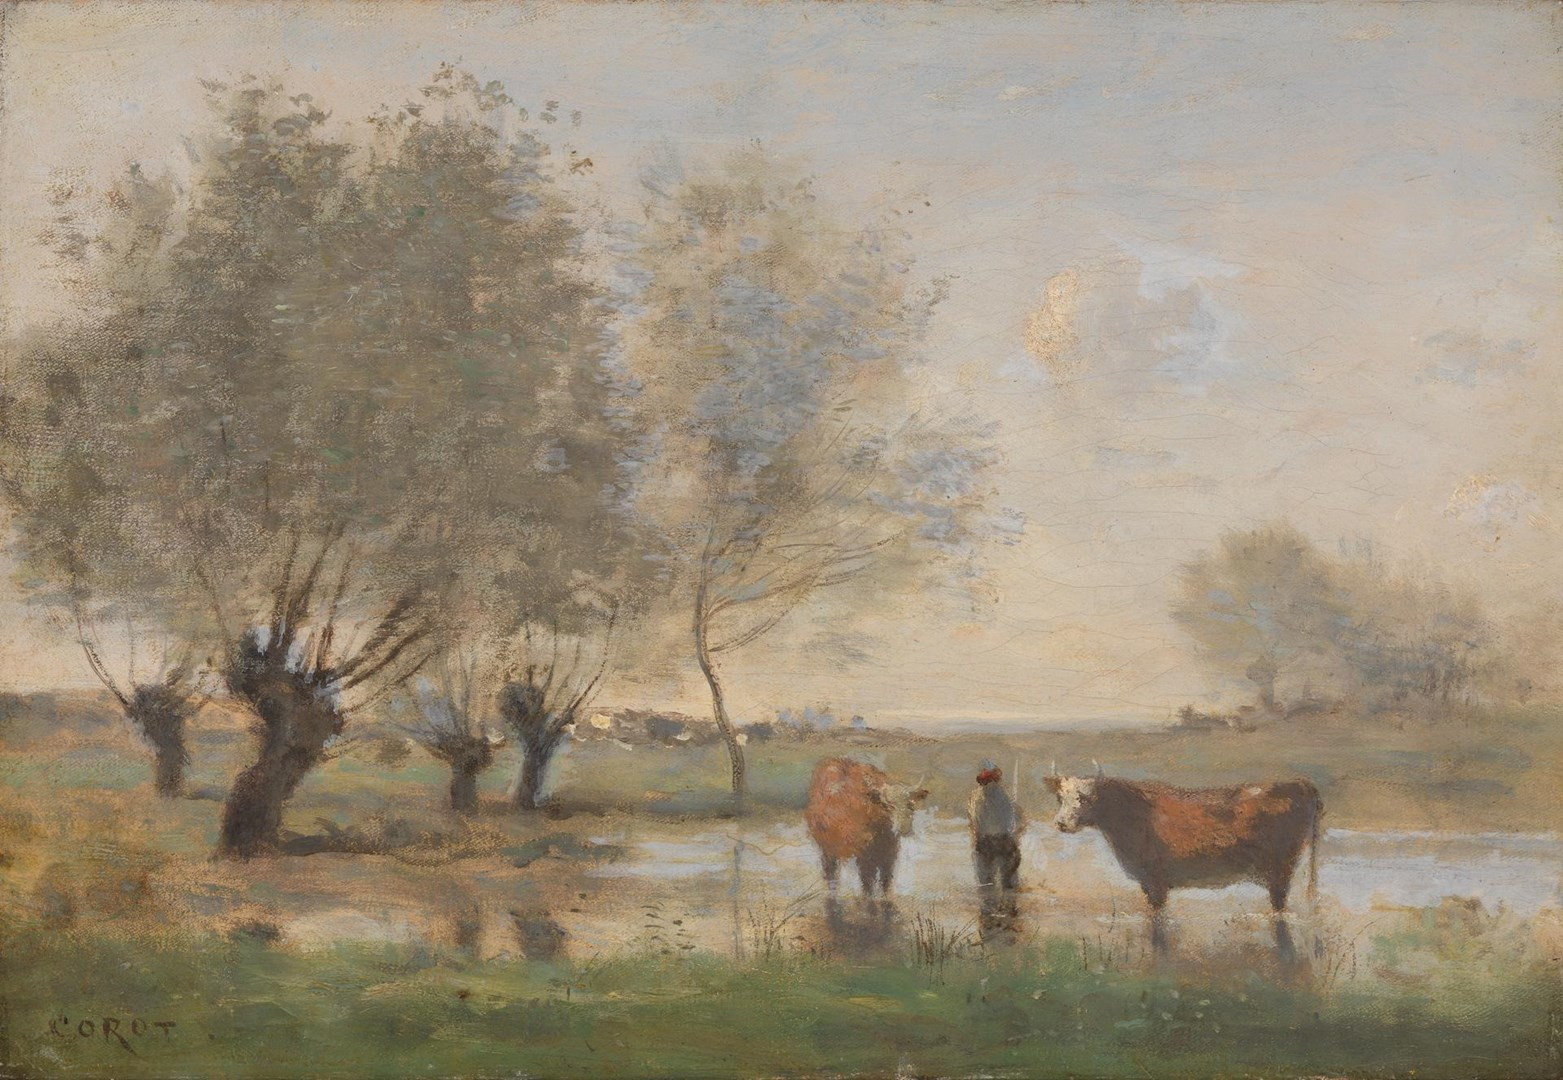 Cows in a Marshy Landscape by Jean-Baptiste-Camille Corot